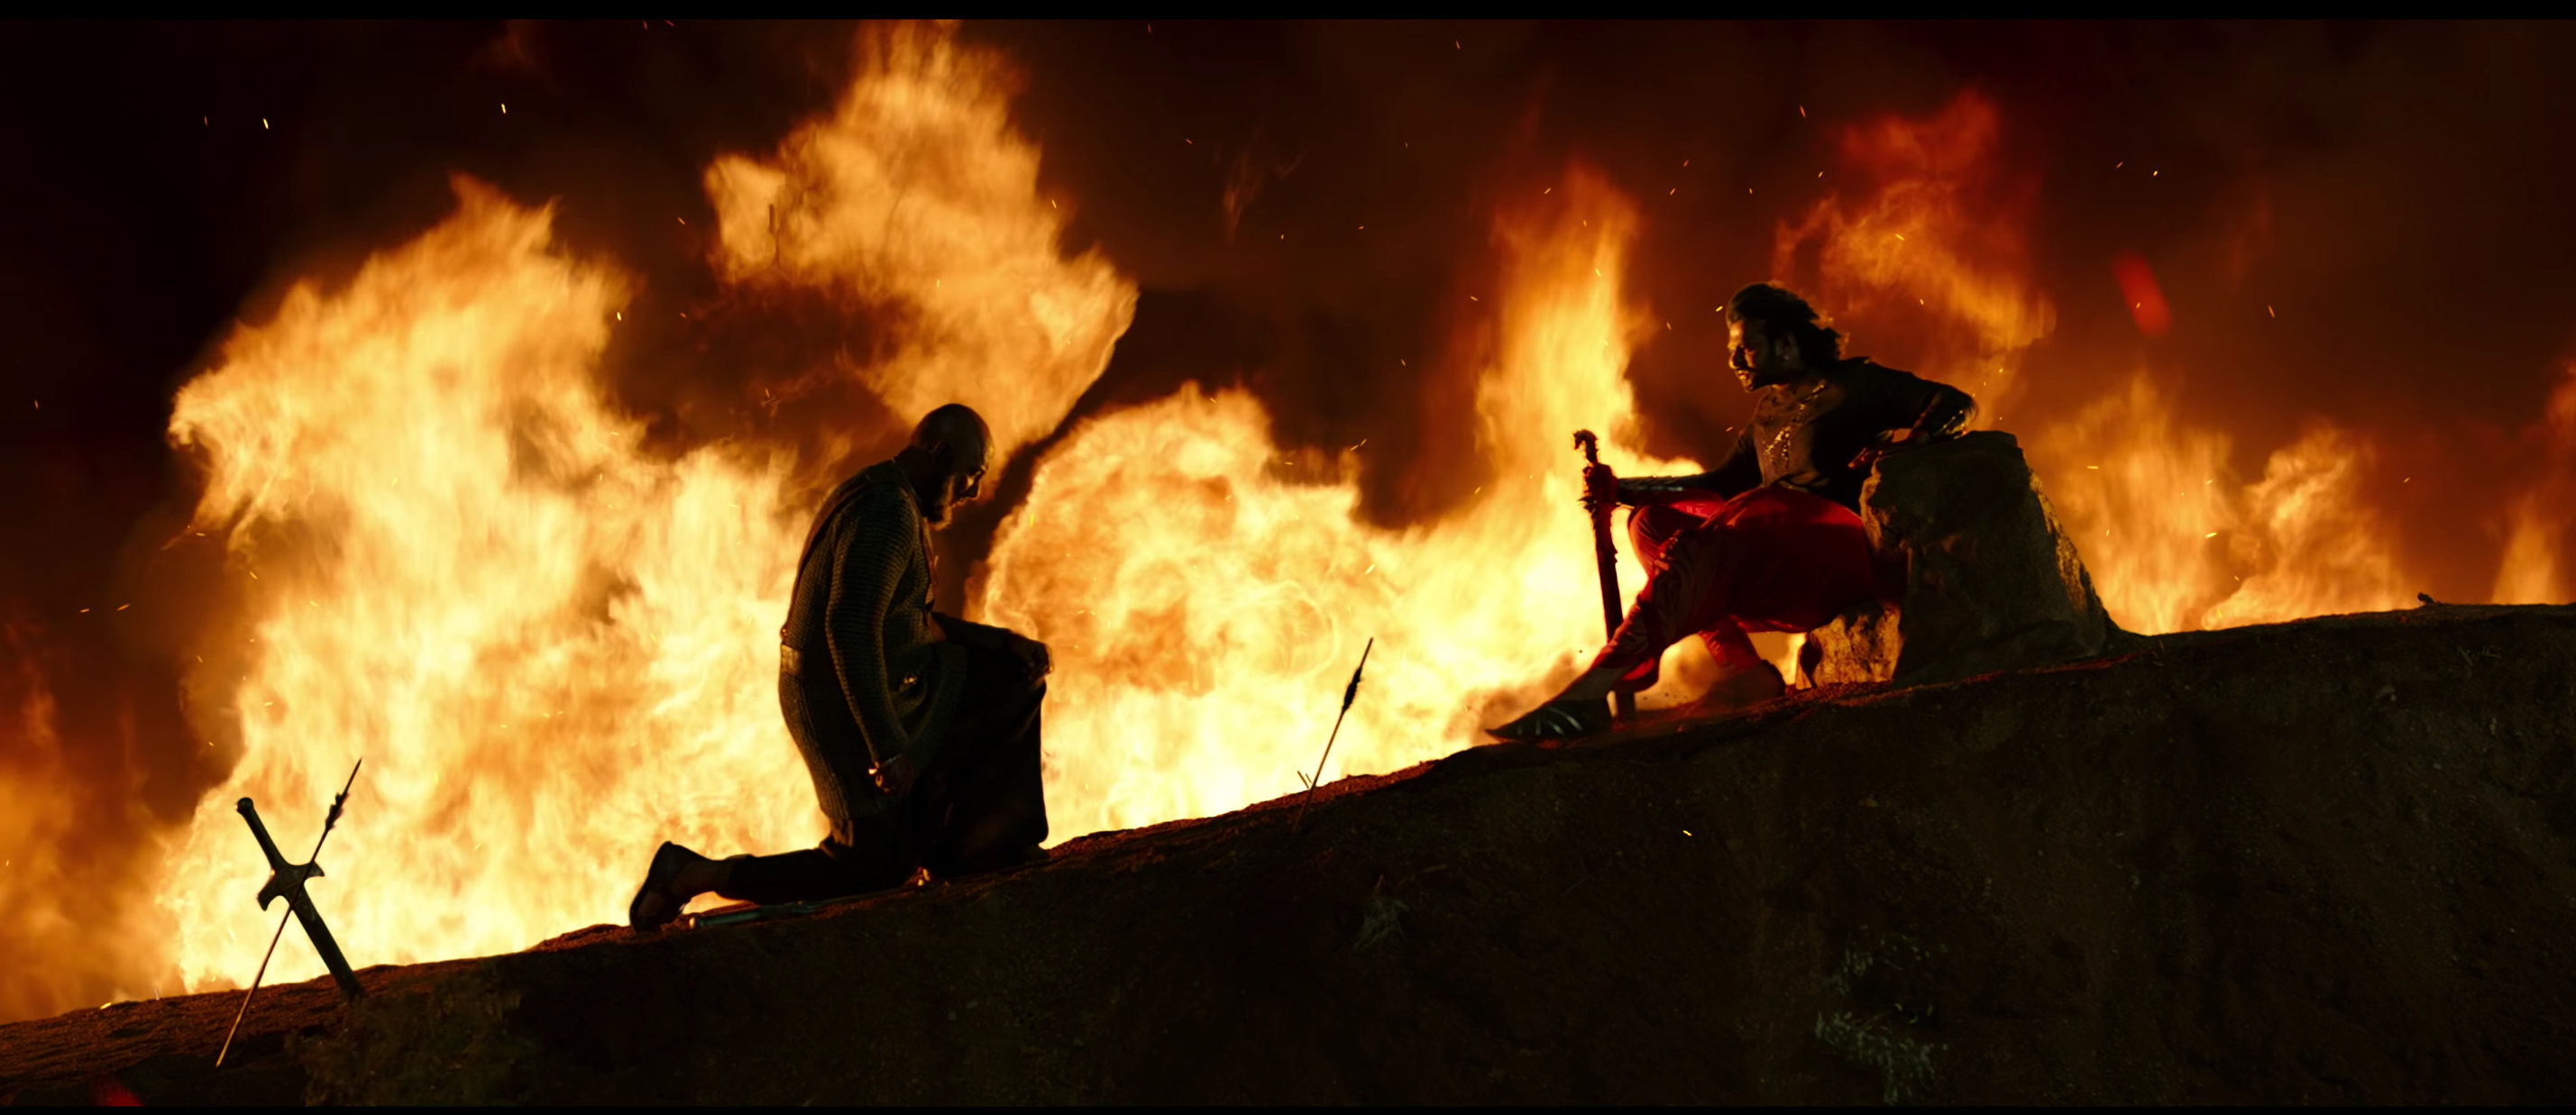 Baahubali killed by Kattappa Wallpaper HD -1 - Free Download